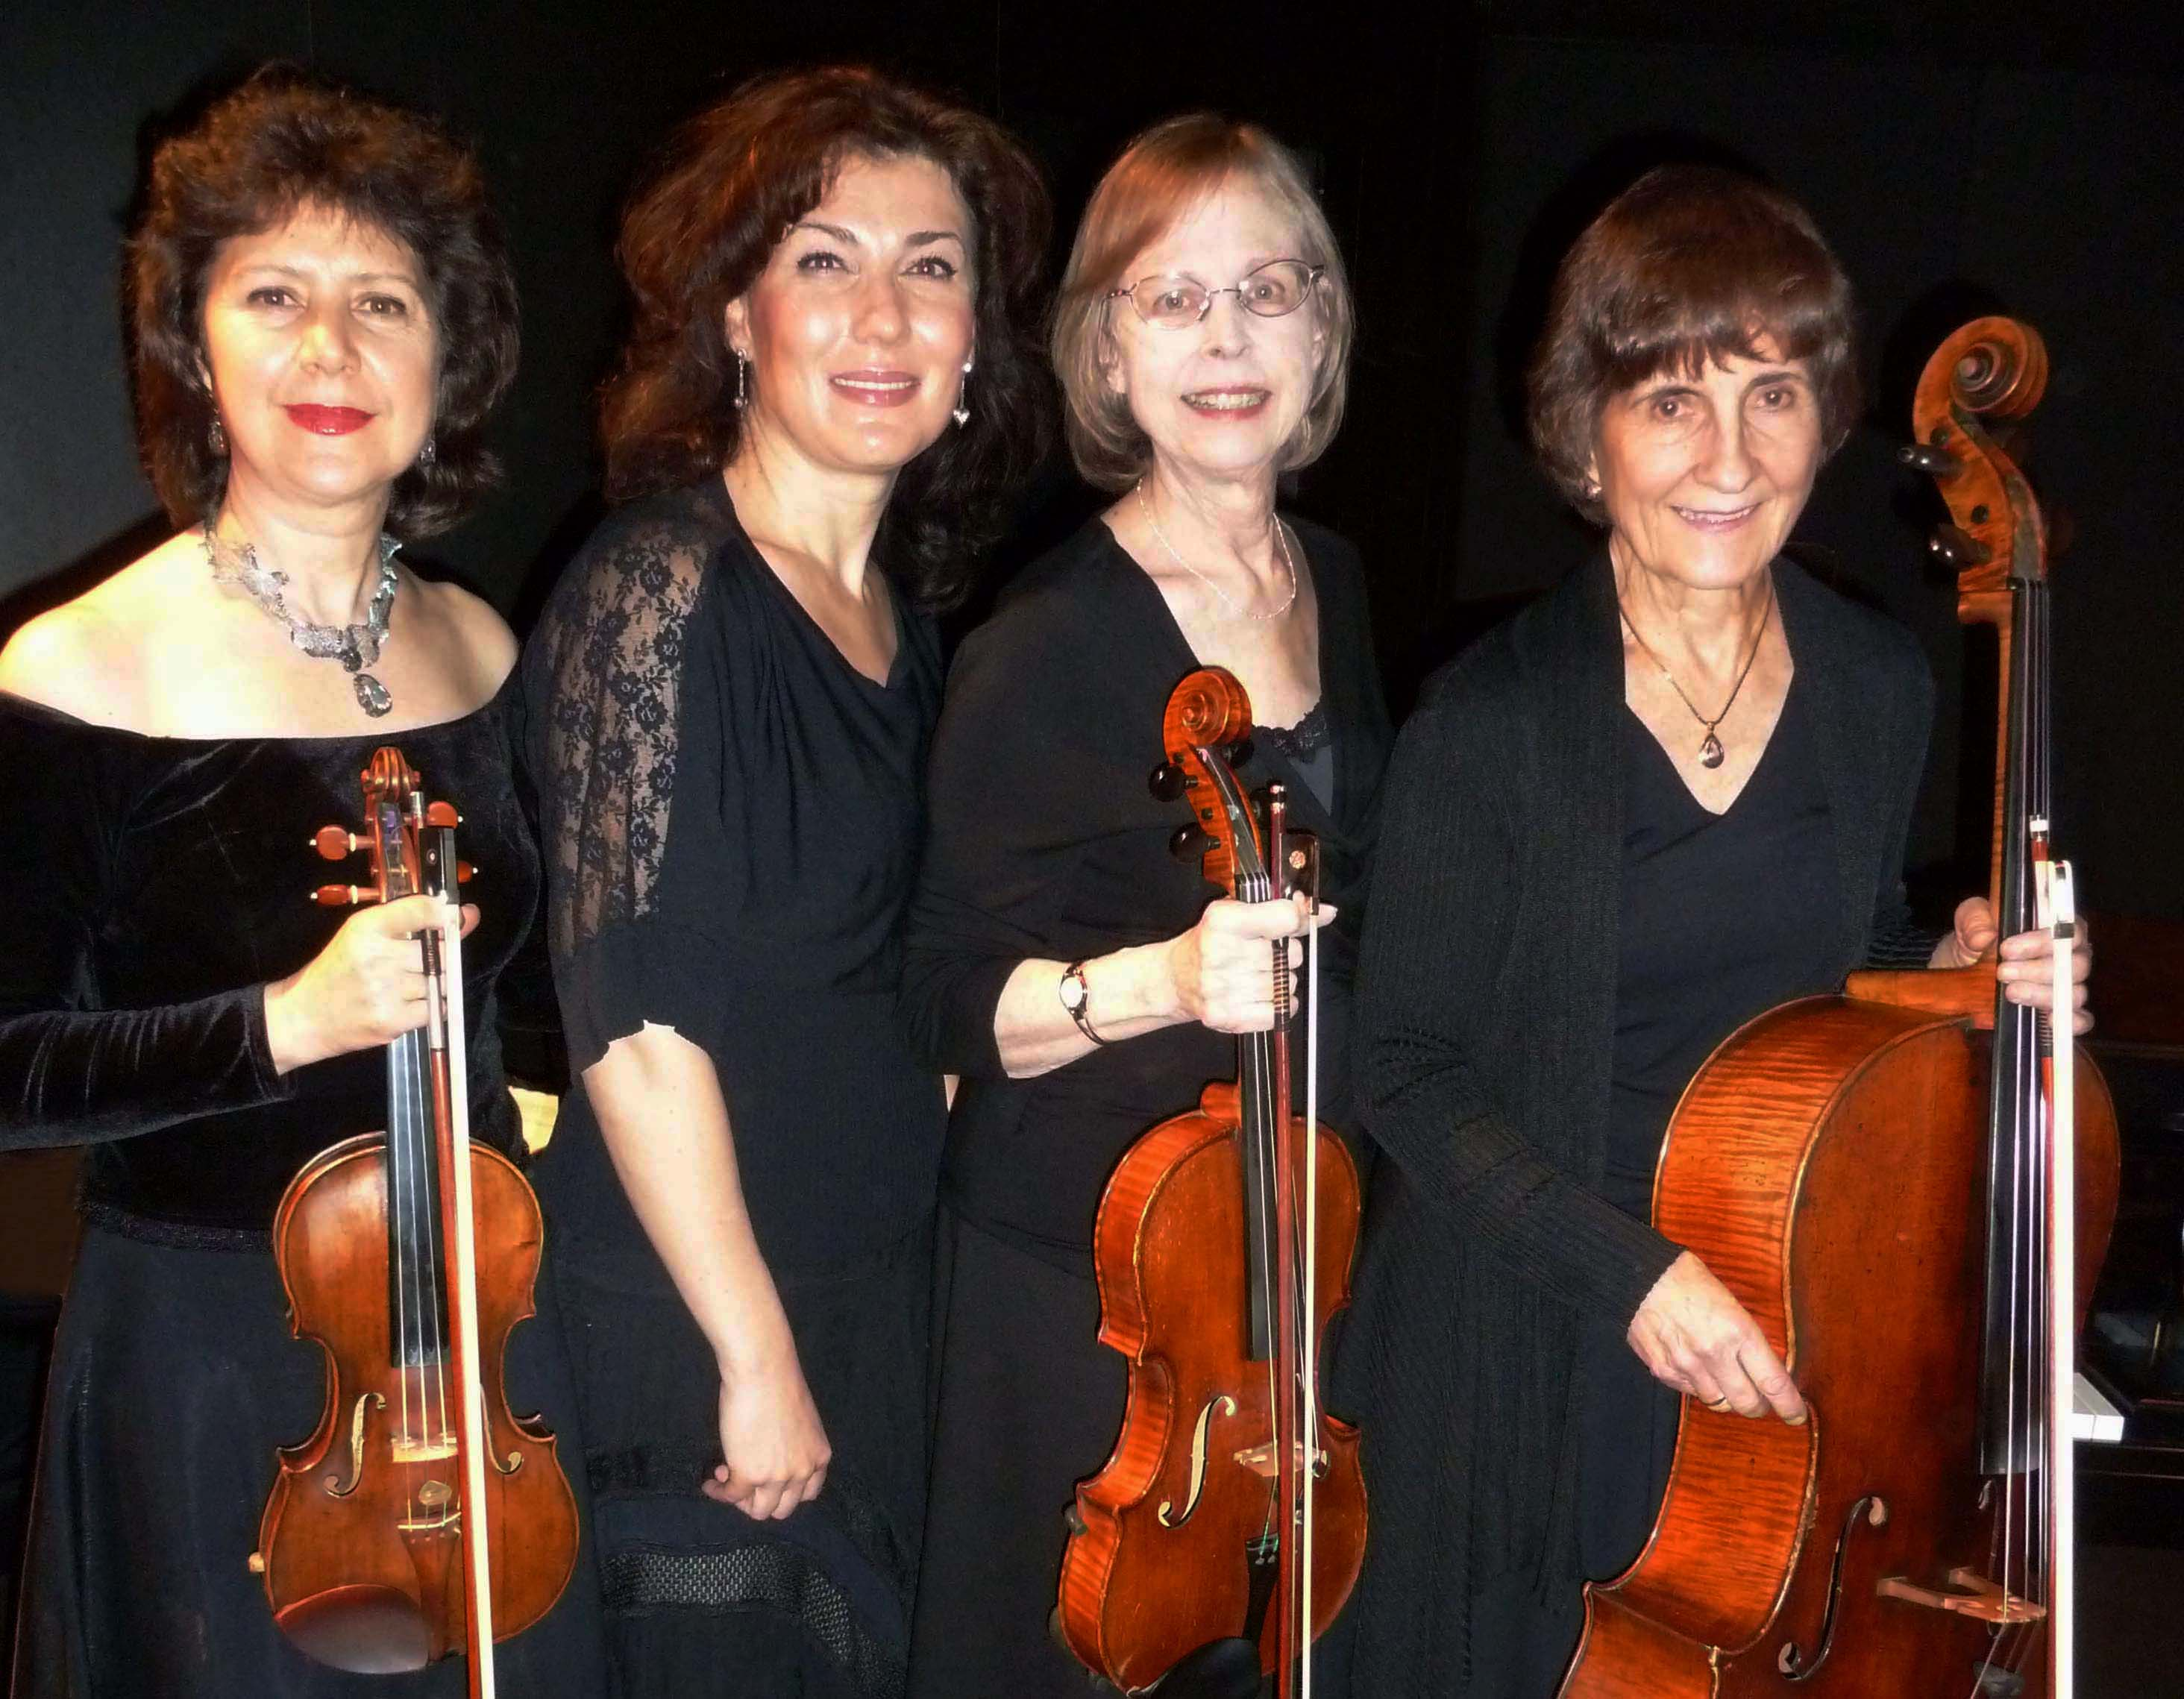 The Luminoso Piano Quartet in AN AFTERNOON OF CHAMBER MUSIC